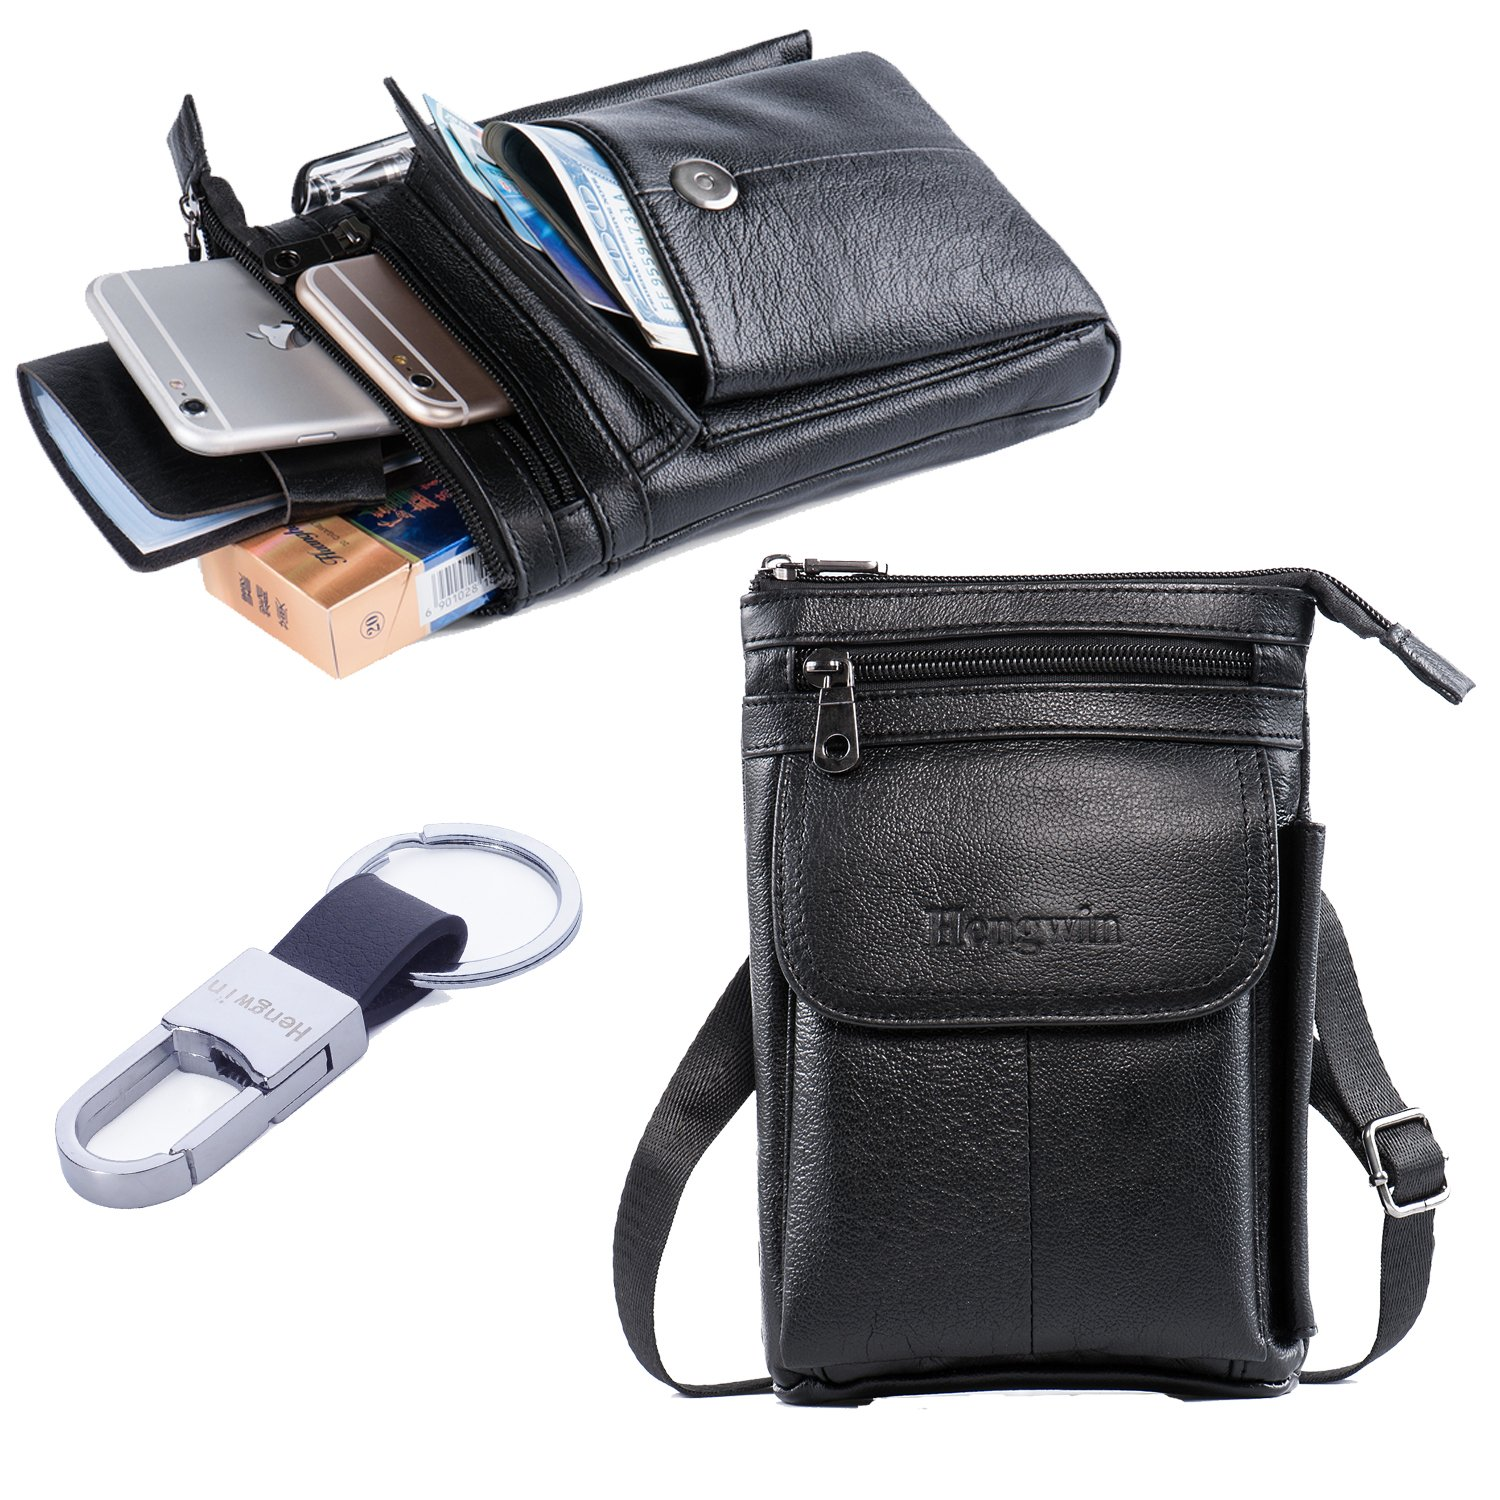 Multi-purpose Genuine Leather Travel Leisure Small Shoulder Bag Belt Waist  Pack  Cellphone Purse Crossbody Bag  Smartphone Pouch Case with Detachable  ... 59faf8f29ca25